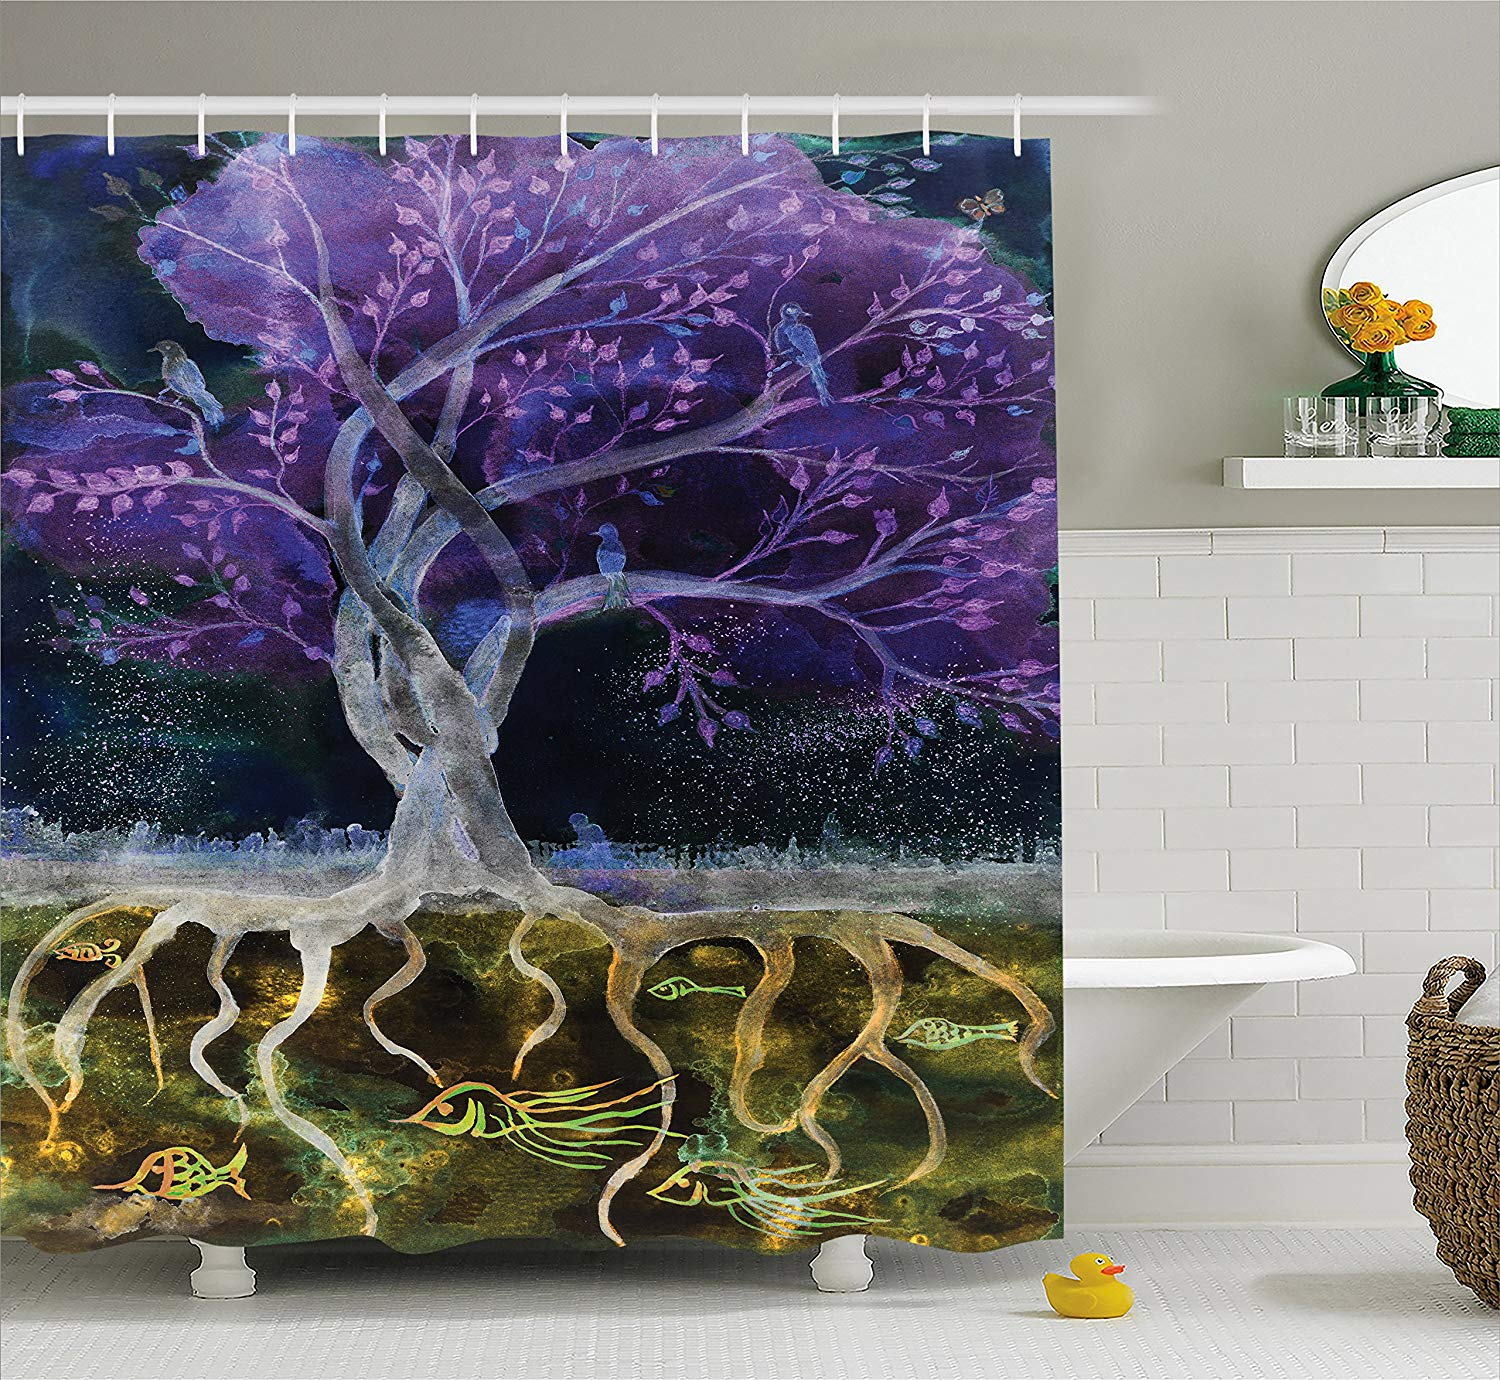 Tree Of Life Shower Curtain Psychedelic Magical Mysterious At Night With Birds And Fishes Home